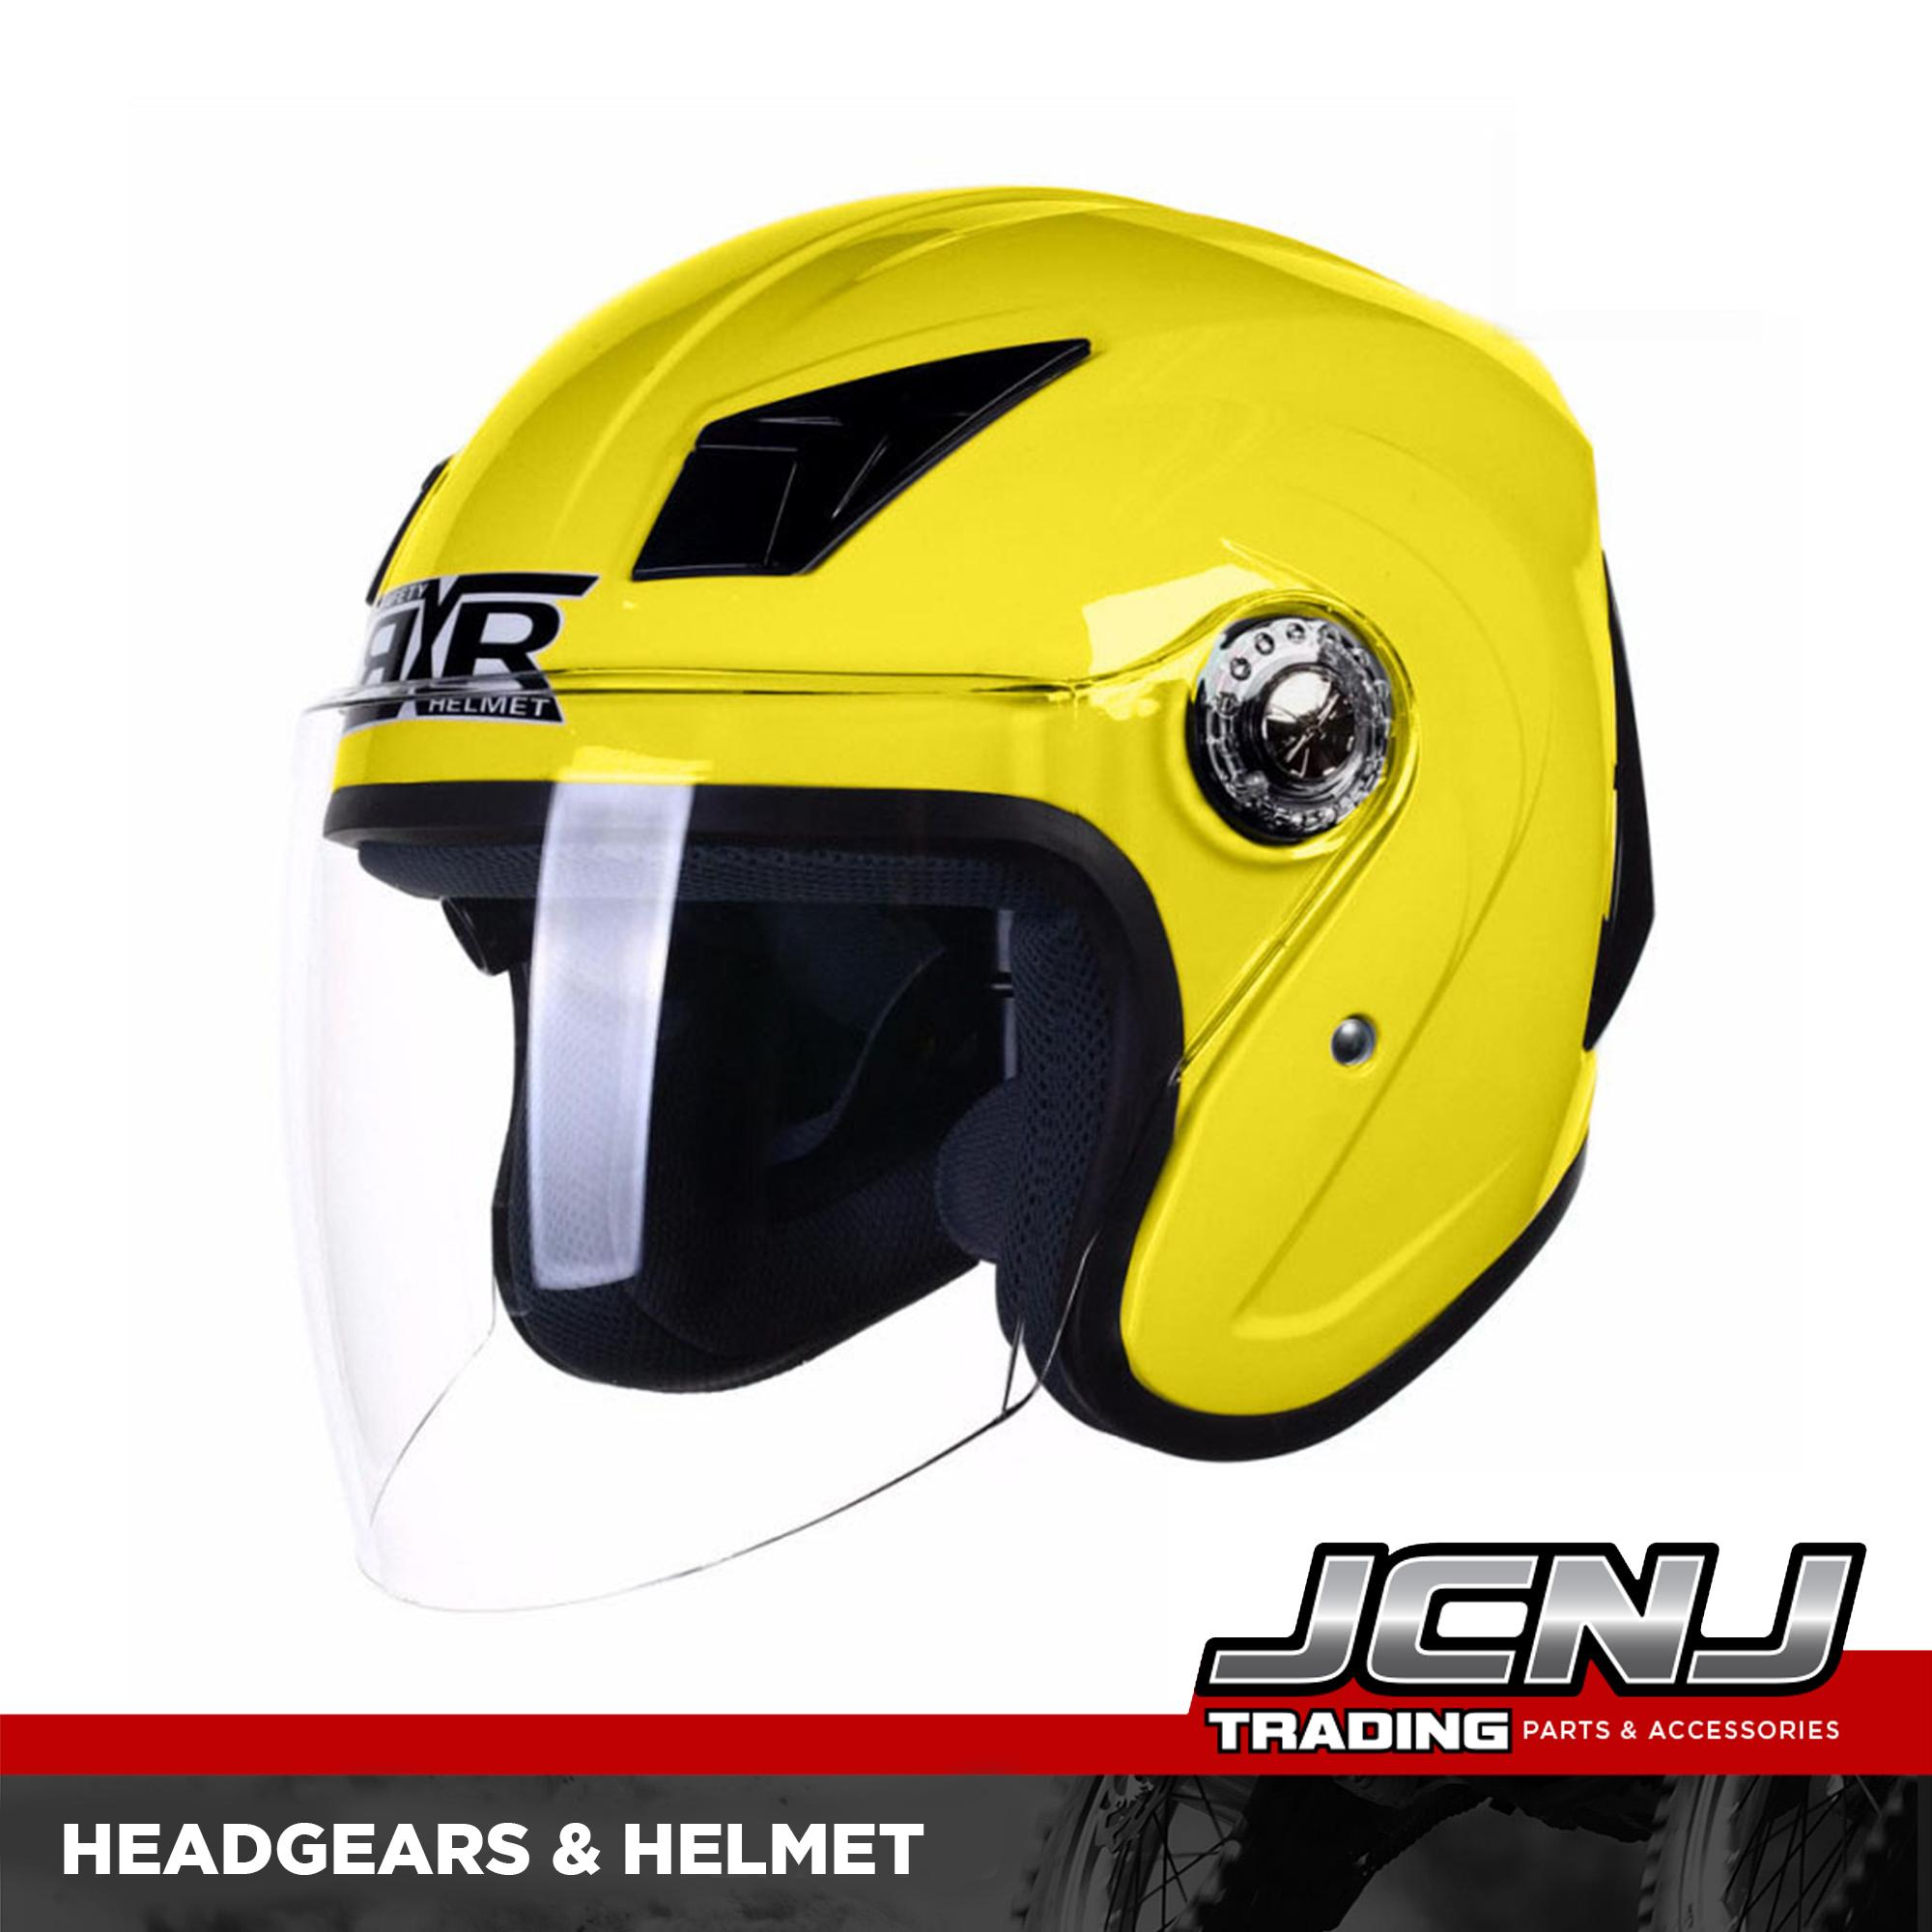 89a41845567 Helmets for sale - Motorcycle Helmets online brands